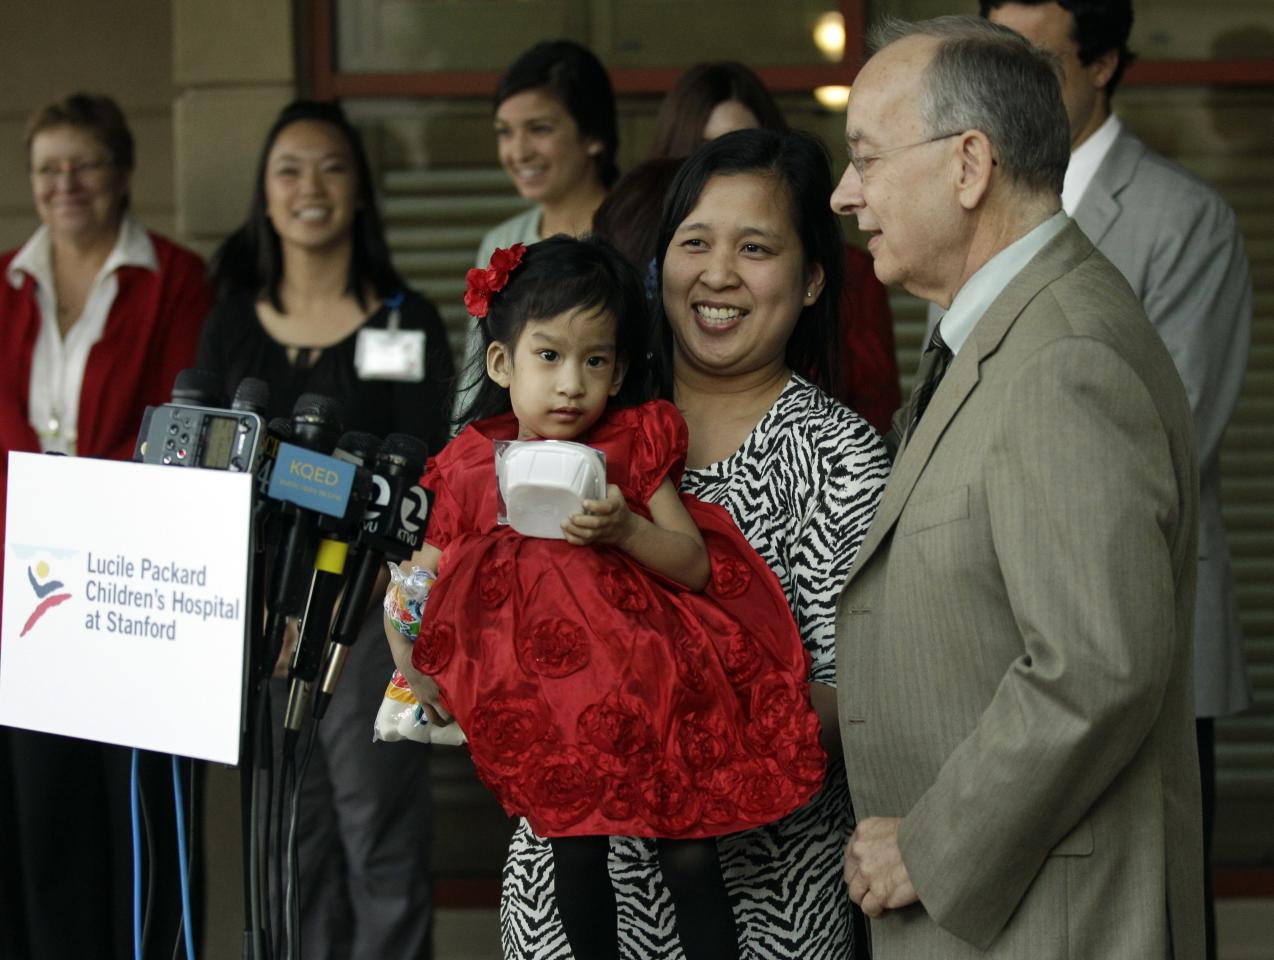 Ginady Sabuco, center, holds her daughter Angelina next to surgeon Gary Hartman, at right, at Lucile Packard Children's Hospital, Monday, Nov. 14, 2011 in Stanford, Calif. Angelina and twin sister Angelica, who were born joined in the chest and abdomen, are preparing to go home after an intricate surgery to separate them by a group of Lucile Packard doctors. (AP Photo/Marcio Jose Sanchez)